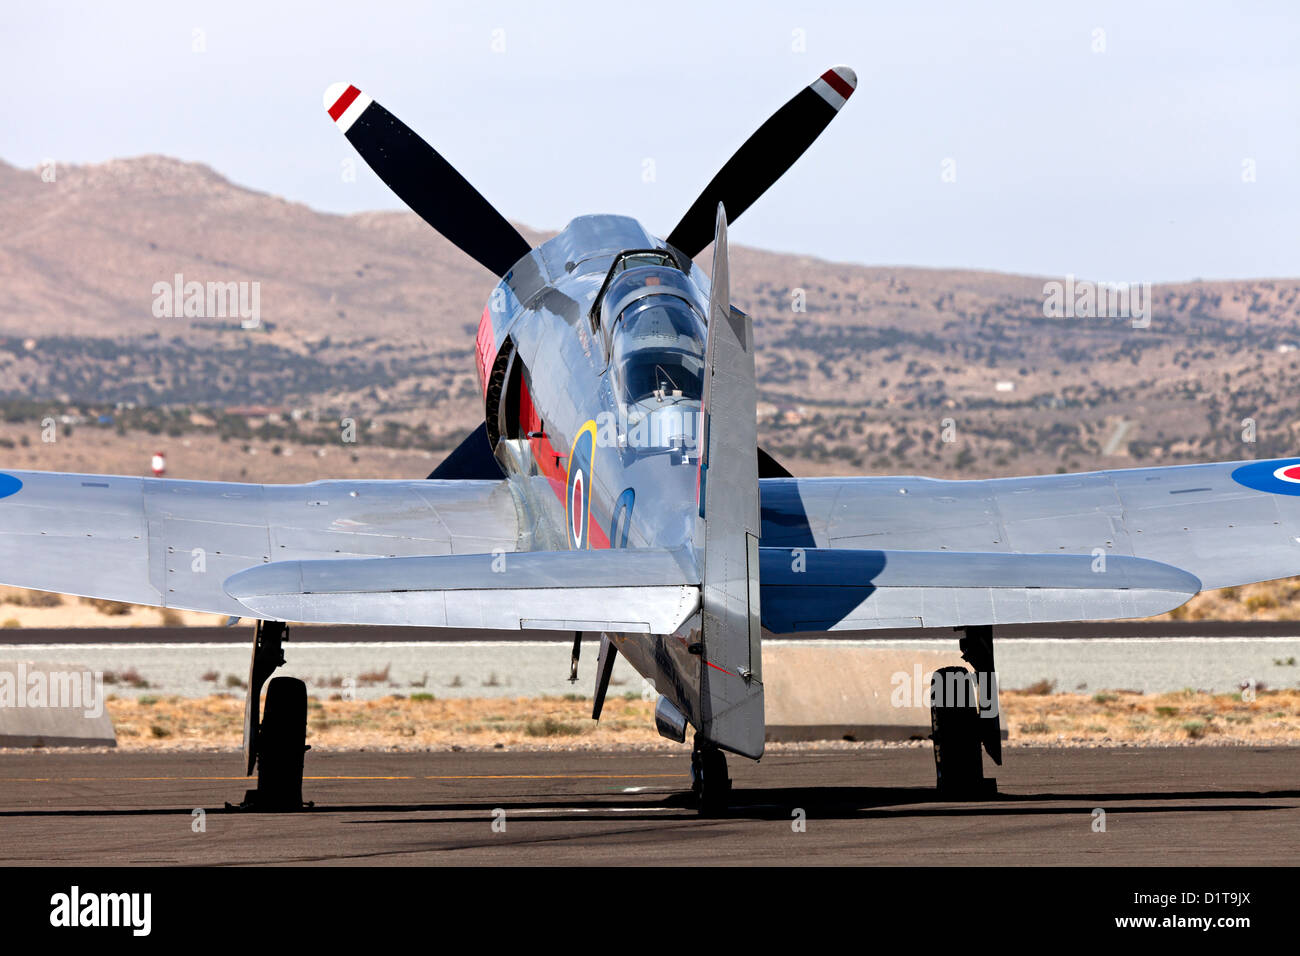 Hawker Sea Fury 'Dreadnought' on the ramp at the 2012 Reno National Championship Air Races. - Stock Image